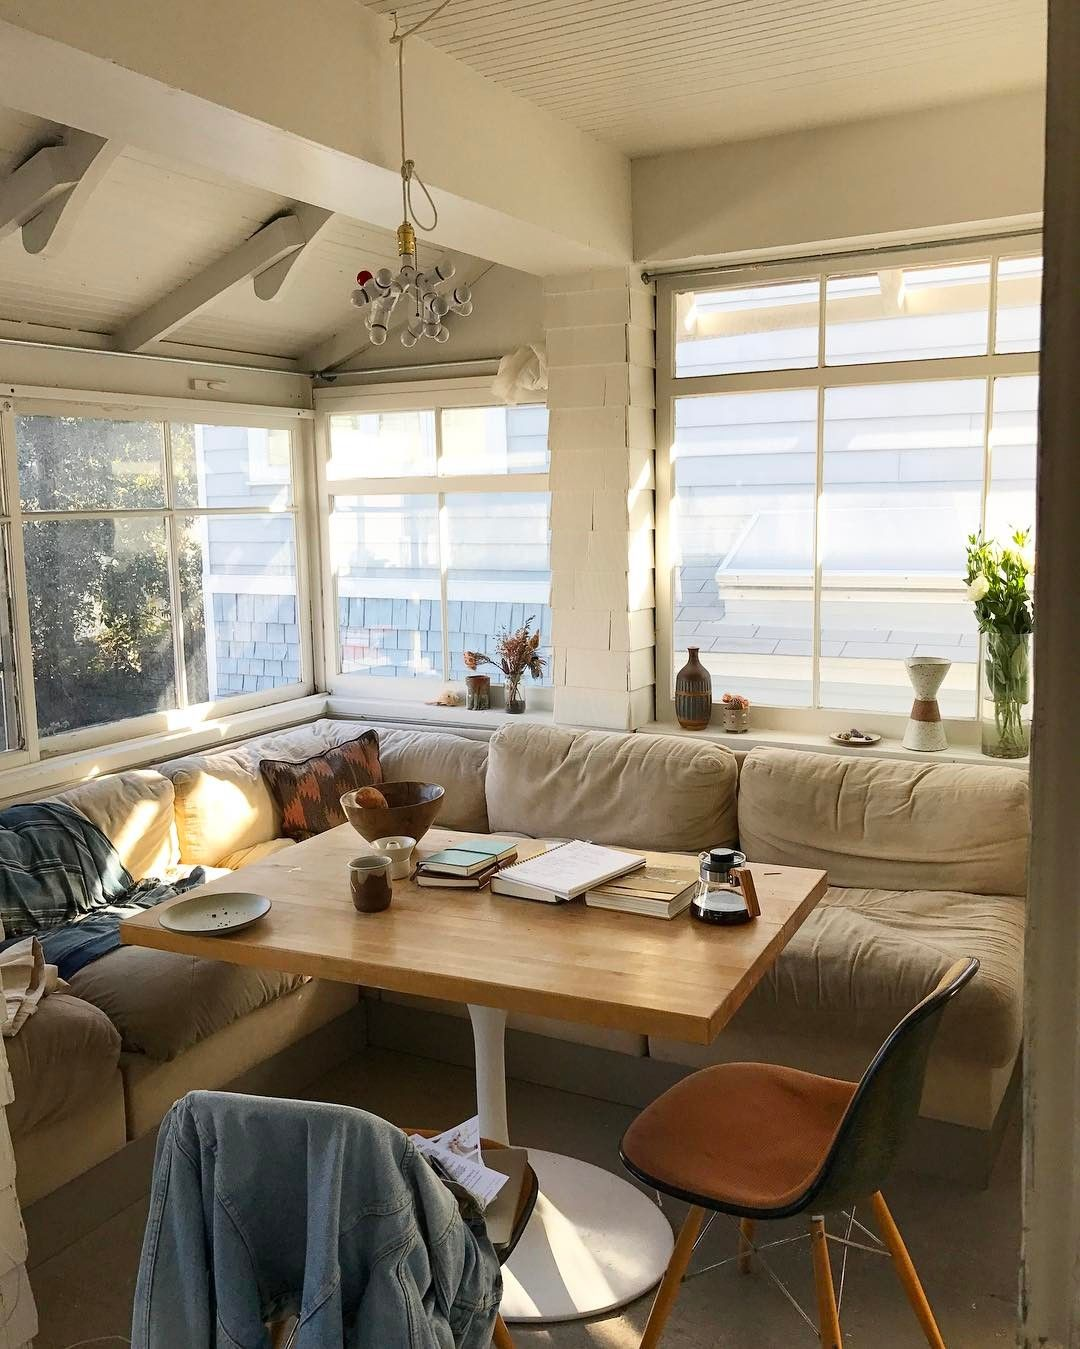 Ally walsh on instagram     living spaces interior design also best espacos images in future house home decor room rh pinterest